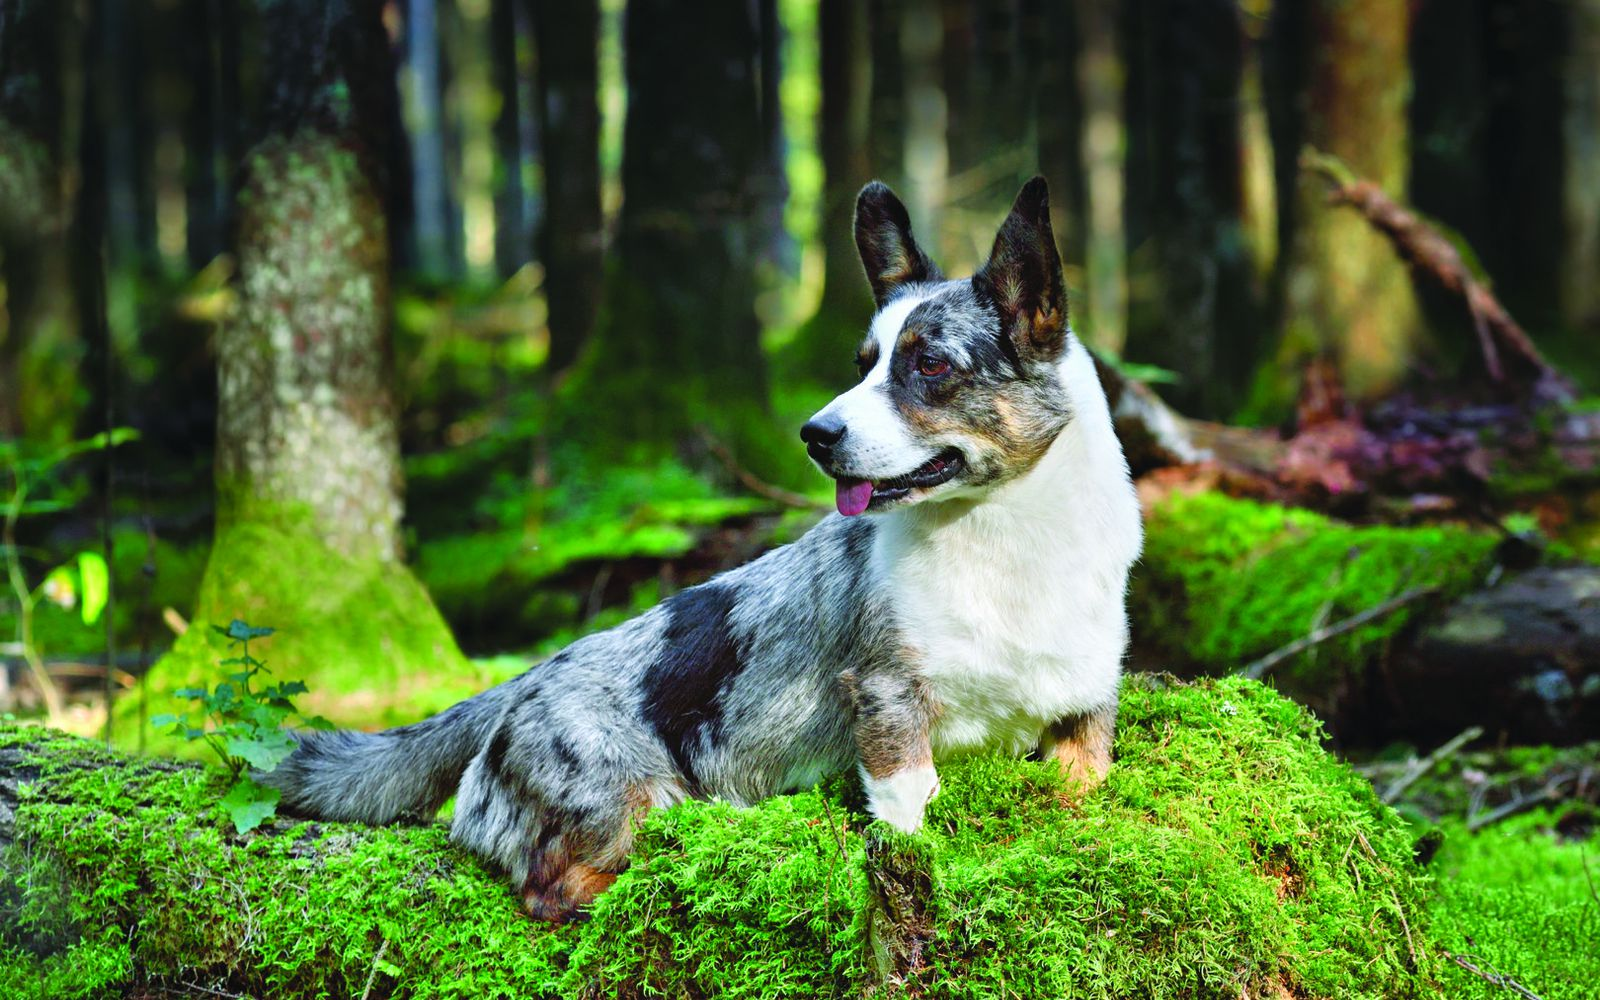 Cardigan Welsh Corgi - Main